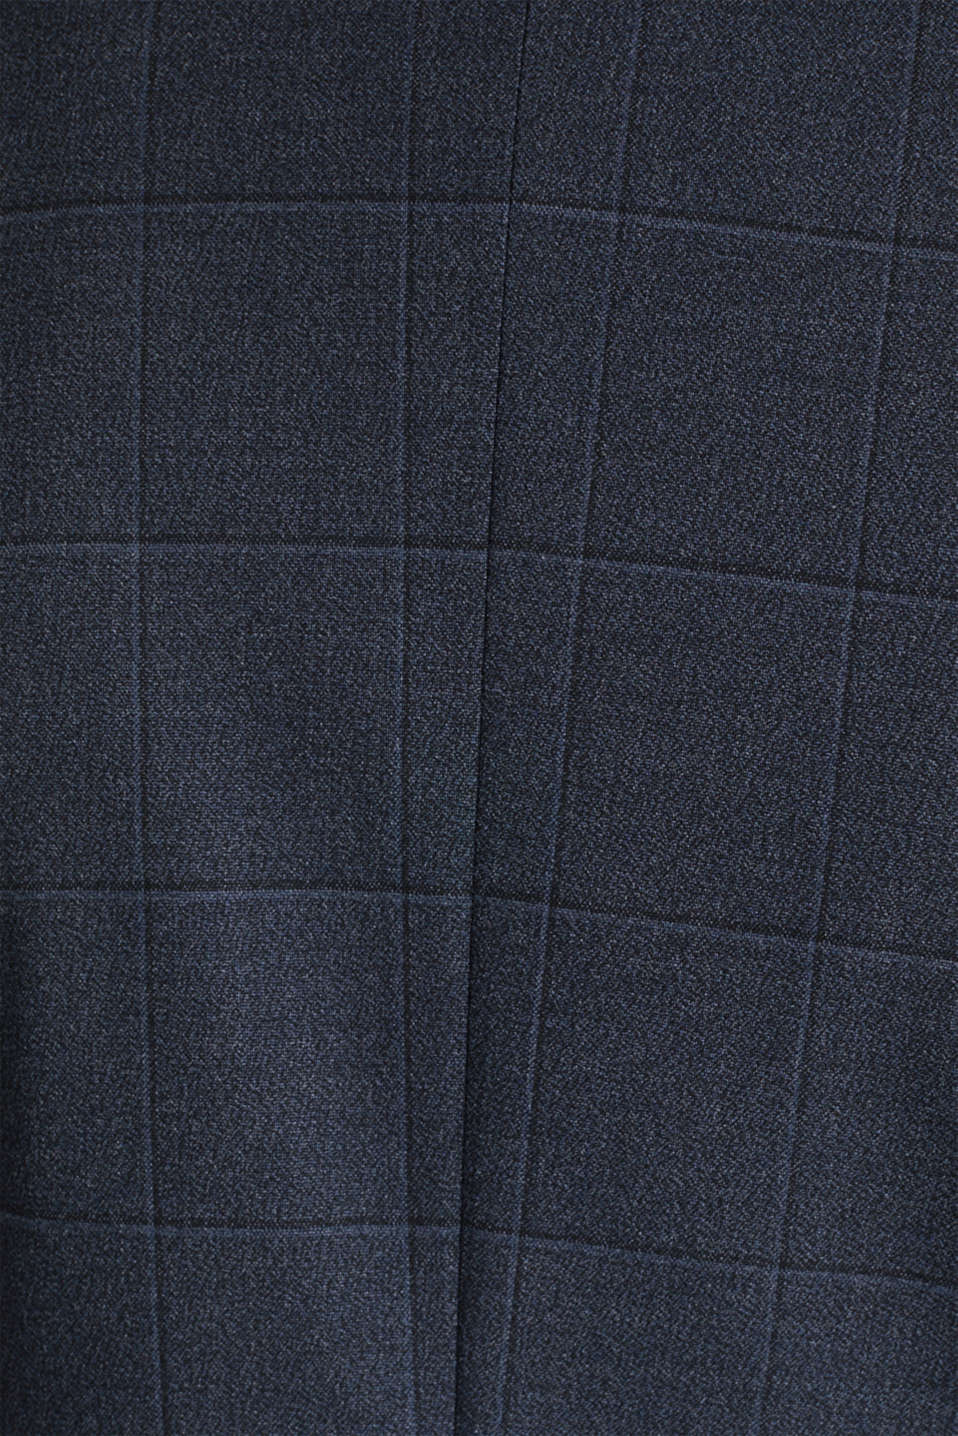 WINDOW CHECK mix + match stretch jacket, DARK BLUE 3, detail image number 5